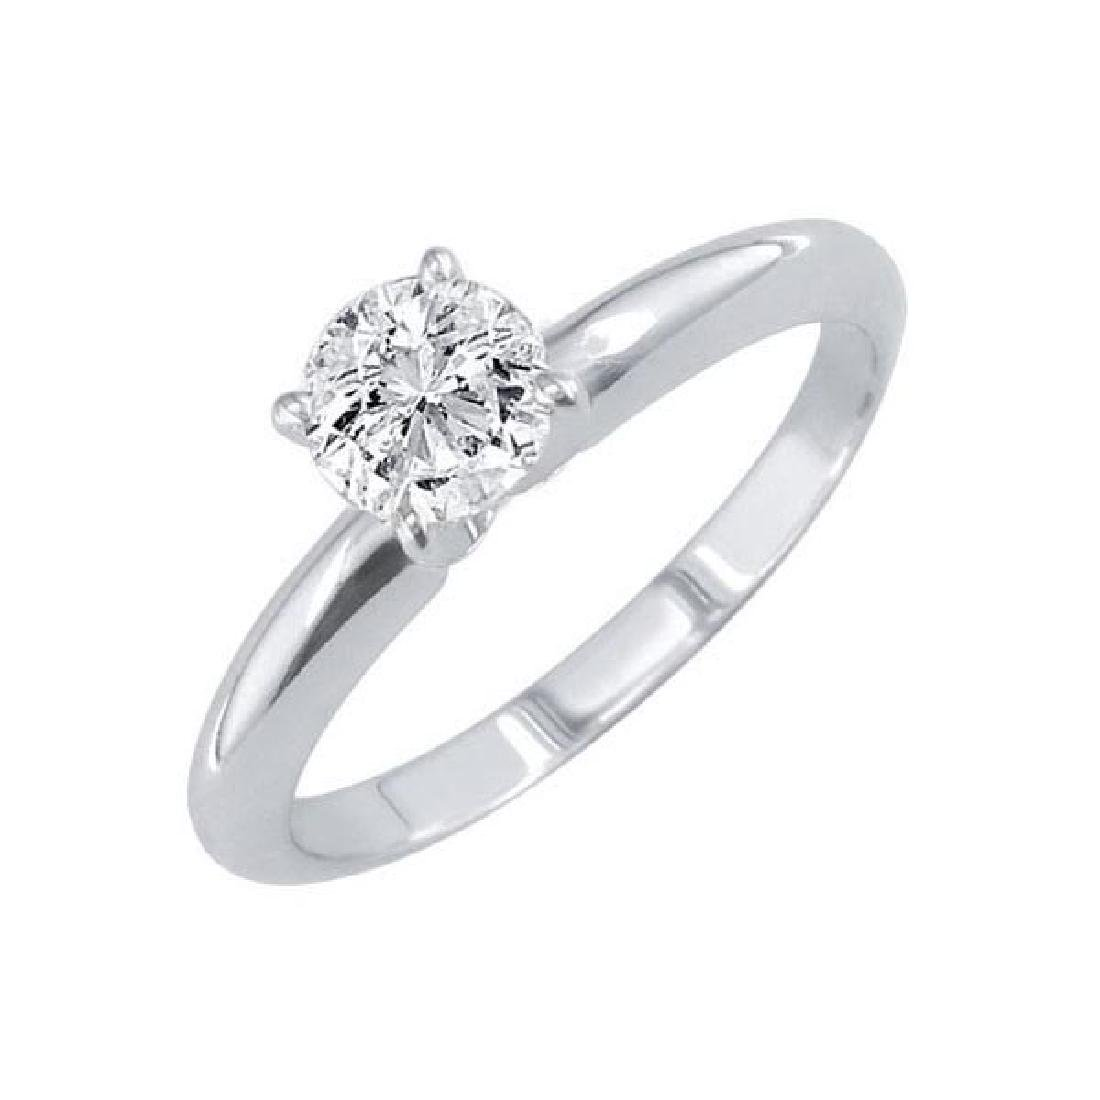 Certified 1.06 CTW Round Diamond Solitaire 14k Ring F/I